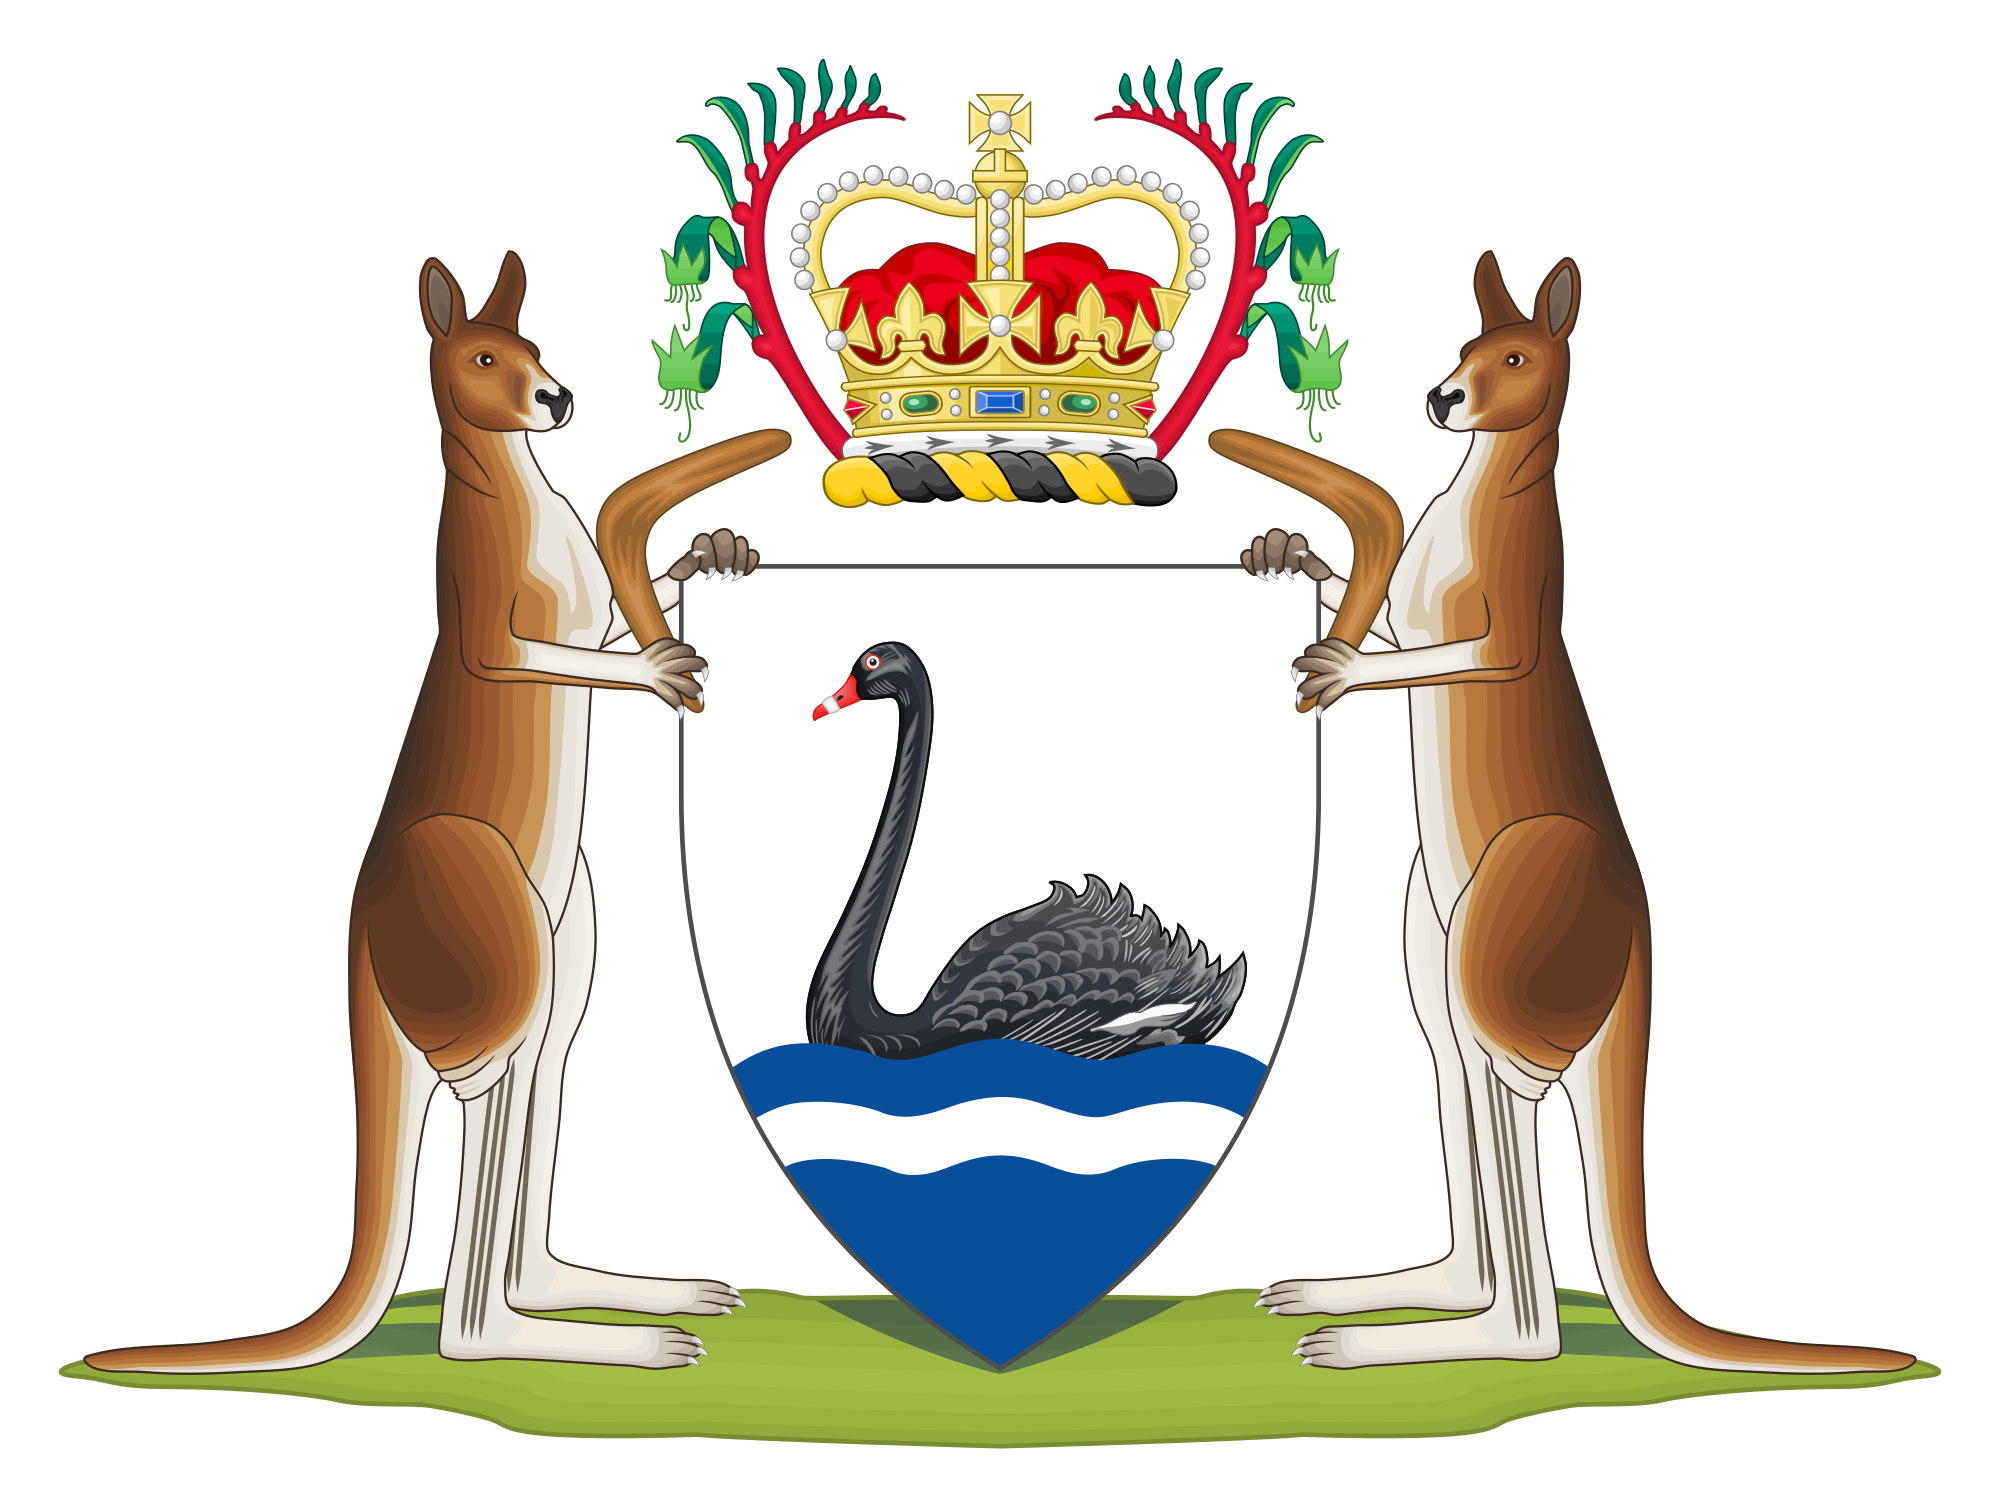 Coat of arms western. Kangaroo clipart mother kangaroo